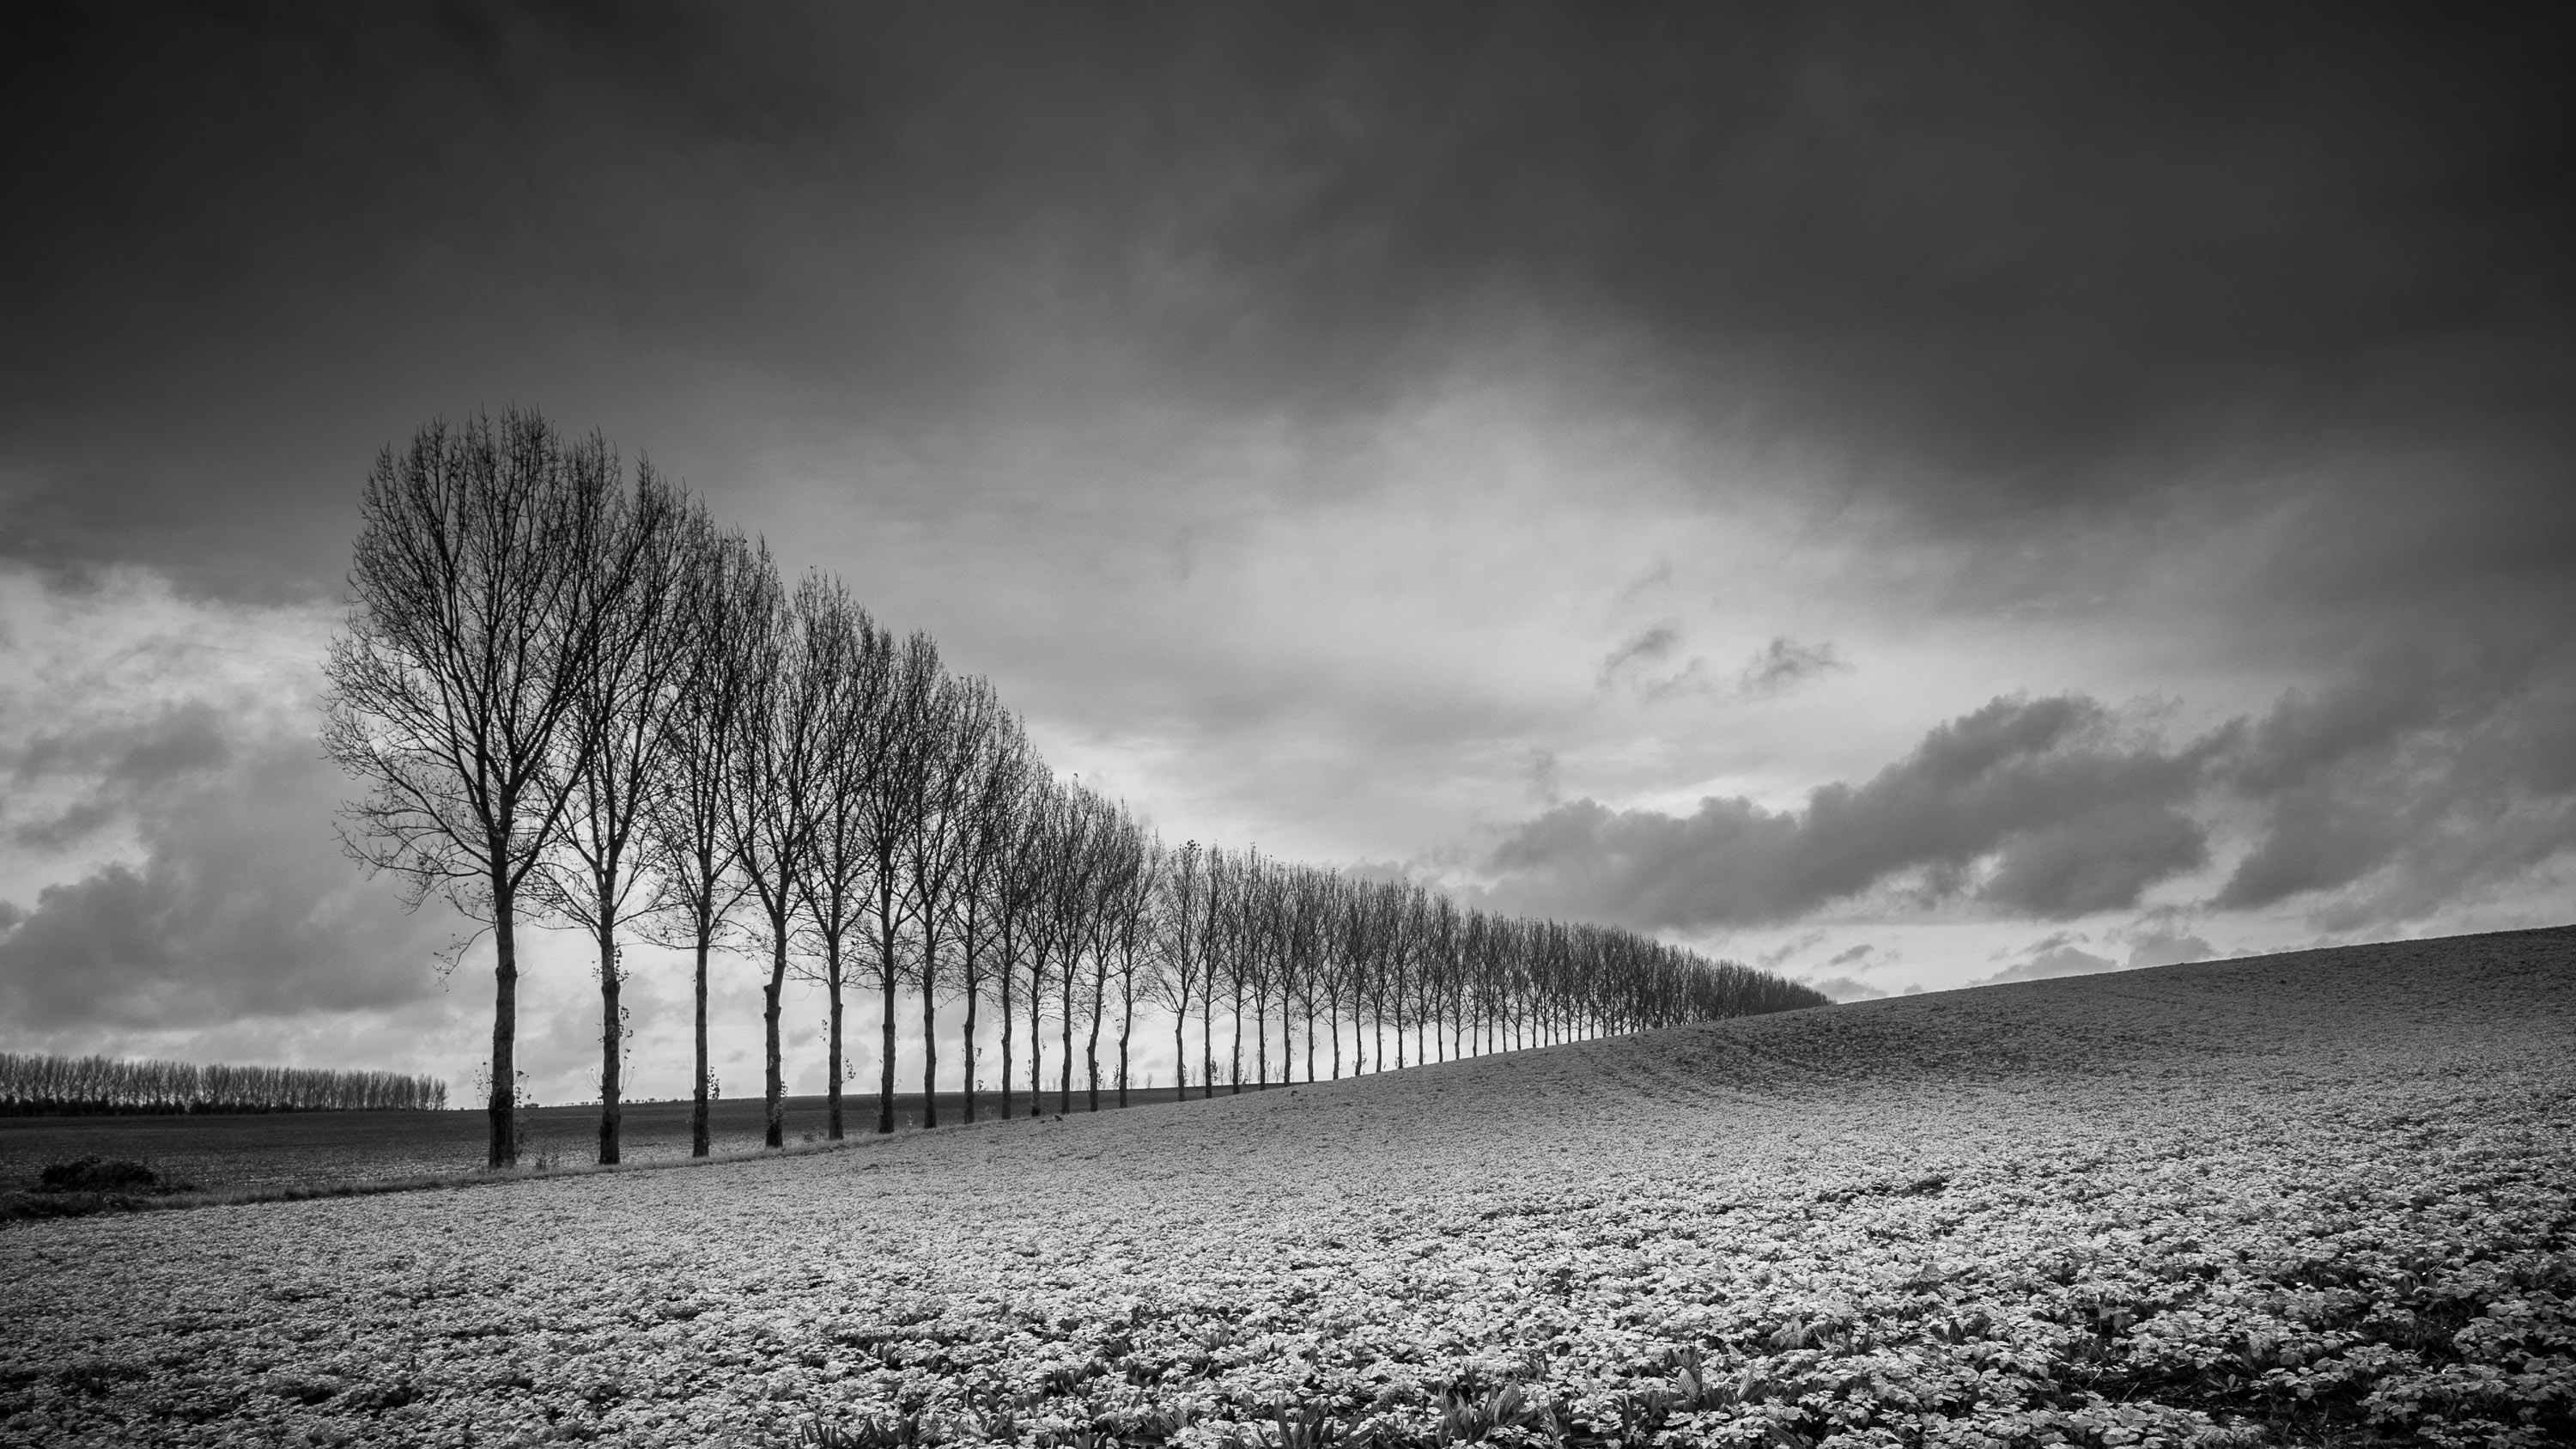 Black And White Photography With Digital Slr